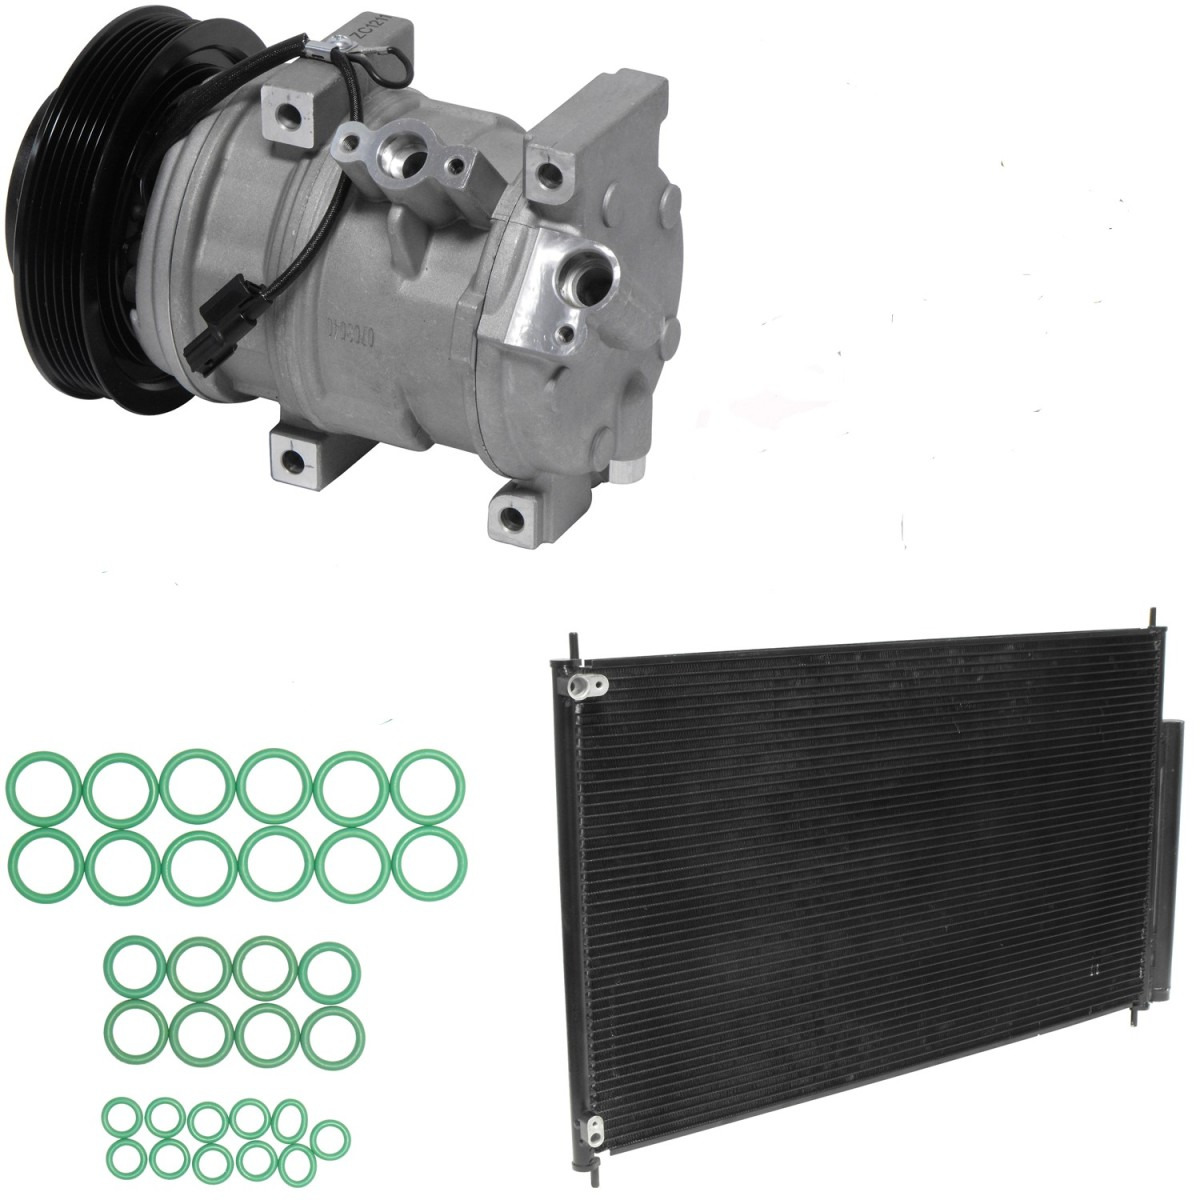 Honda Pilot Ac Service Compressor And Condenser Replacement With